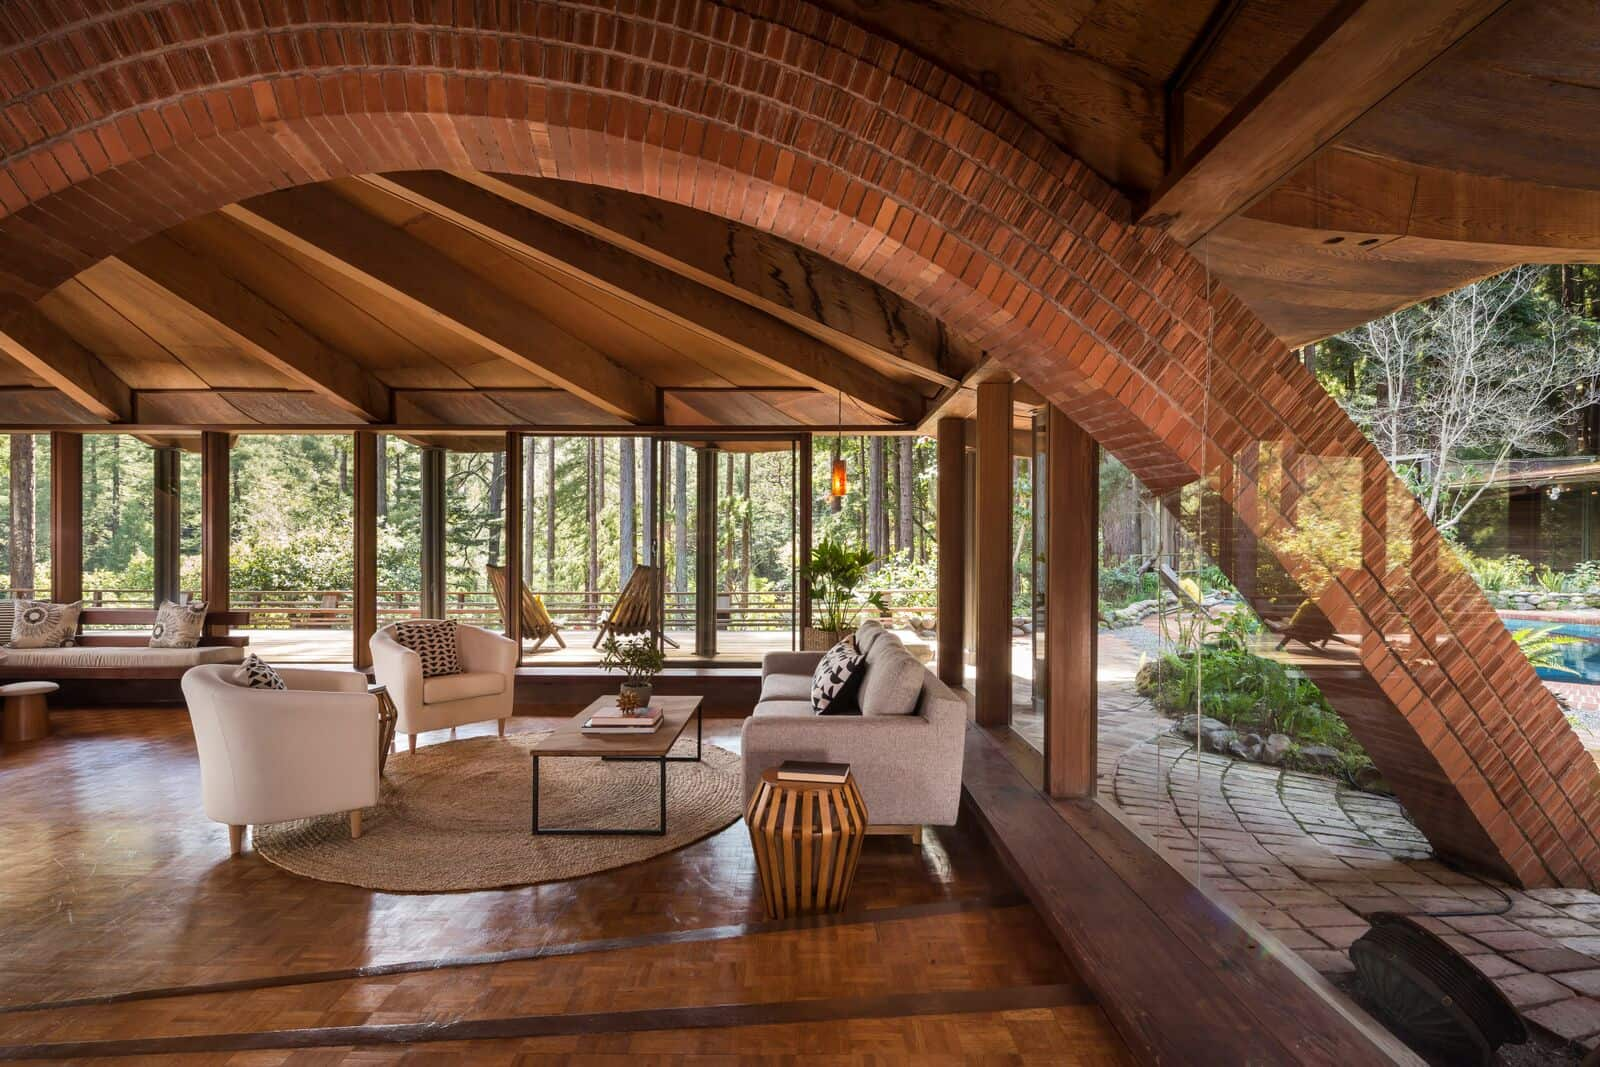 liebermann 39 s mill valley house has a strong frank lloyd wright influence mid century home. Black Bedroom Furniture Sets. Home Design Ideas